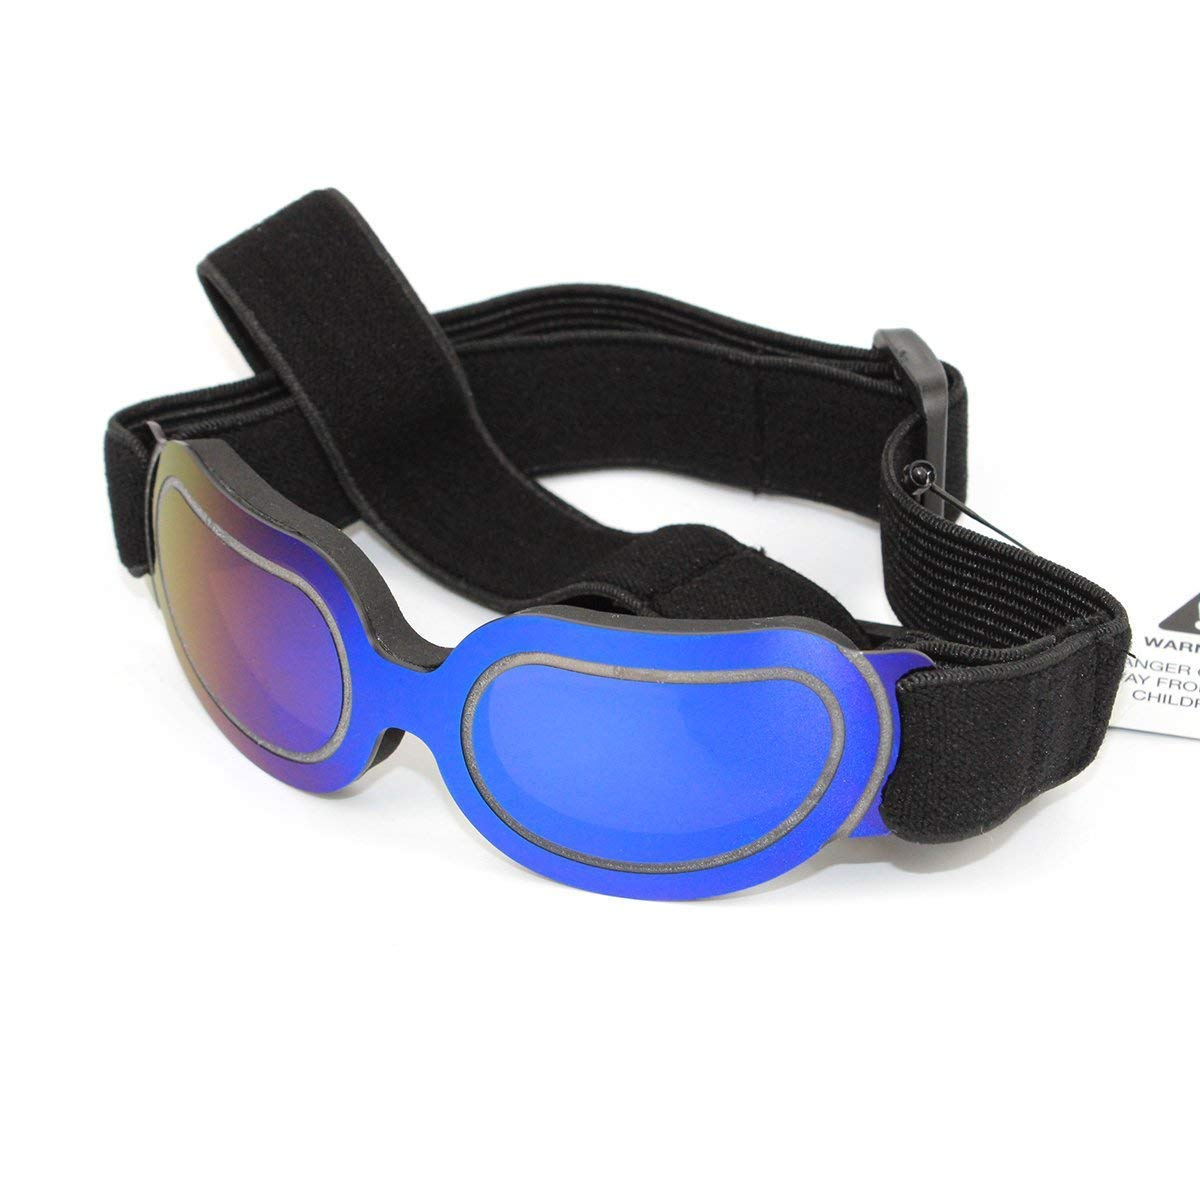 Futureyun Small Dog Sunglasses Dog Goggles for UV Protection Sunglasses Windproof with Adjustable band for Puppy Doggy Cat